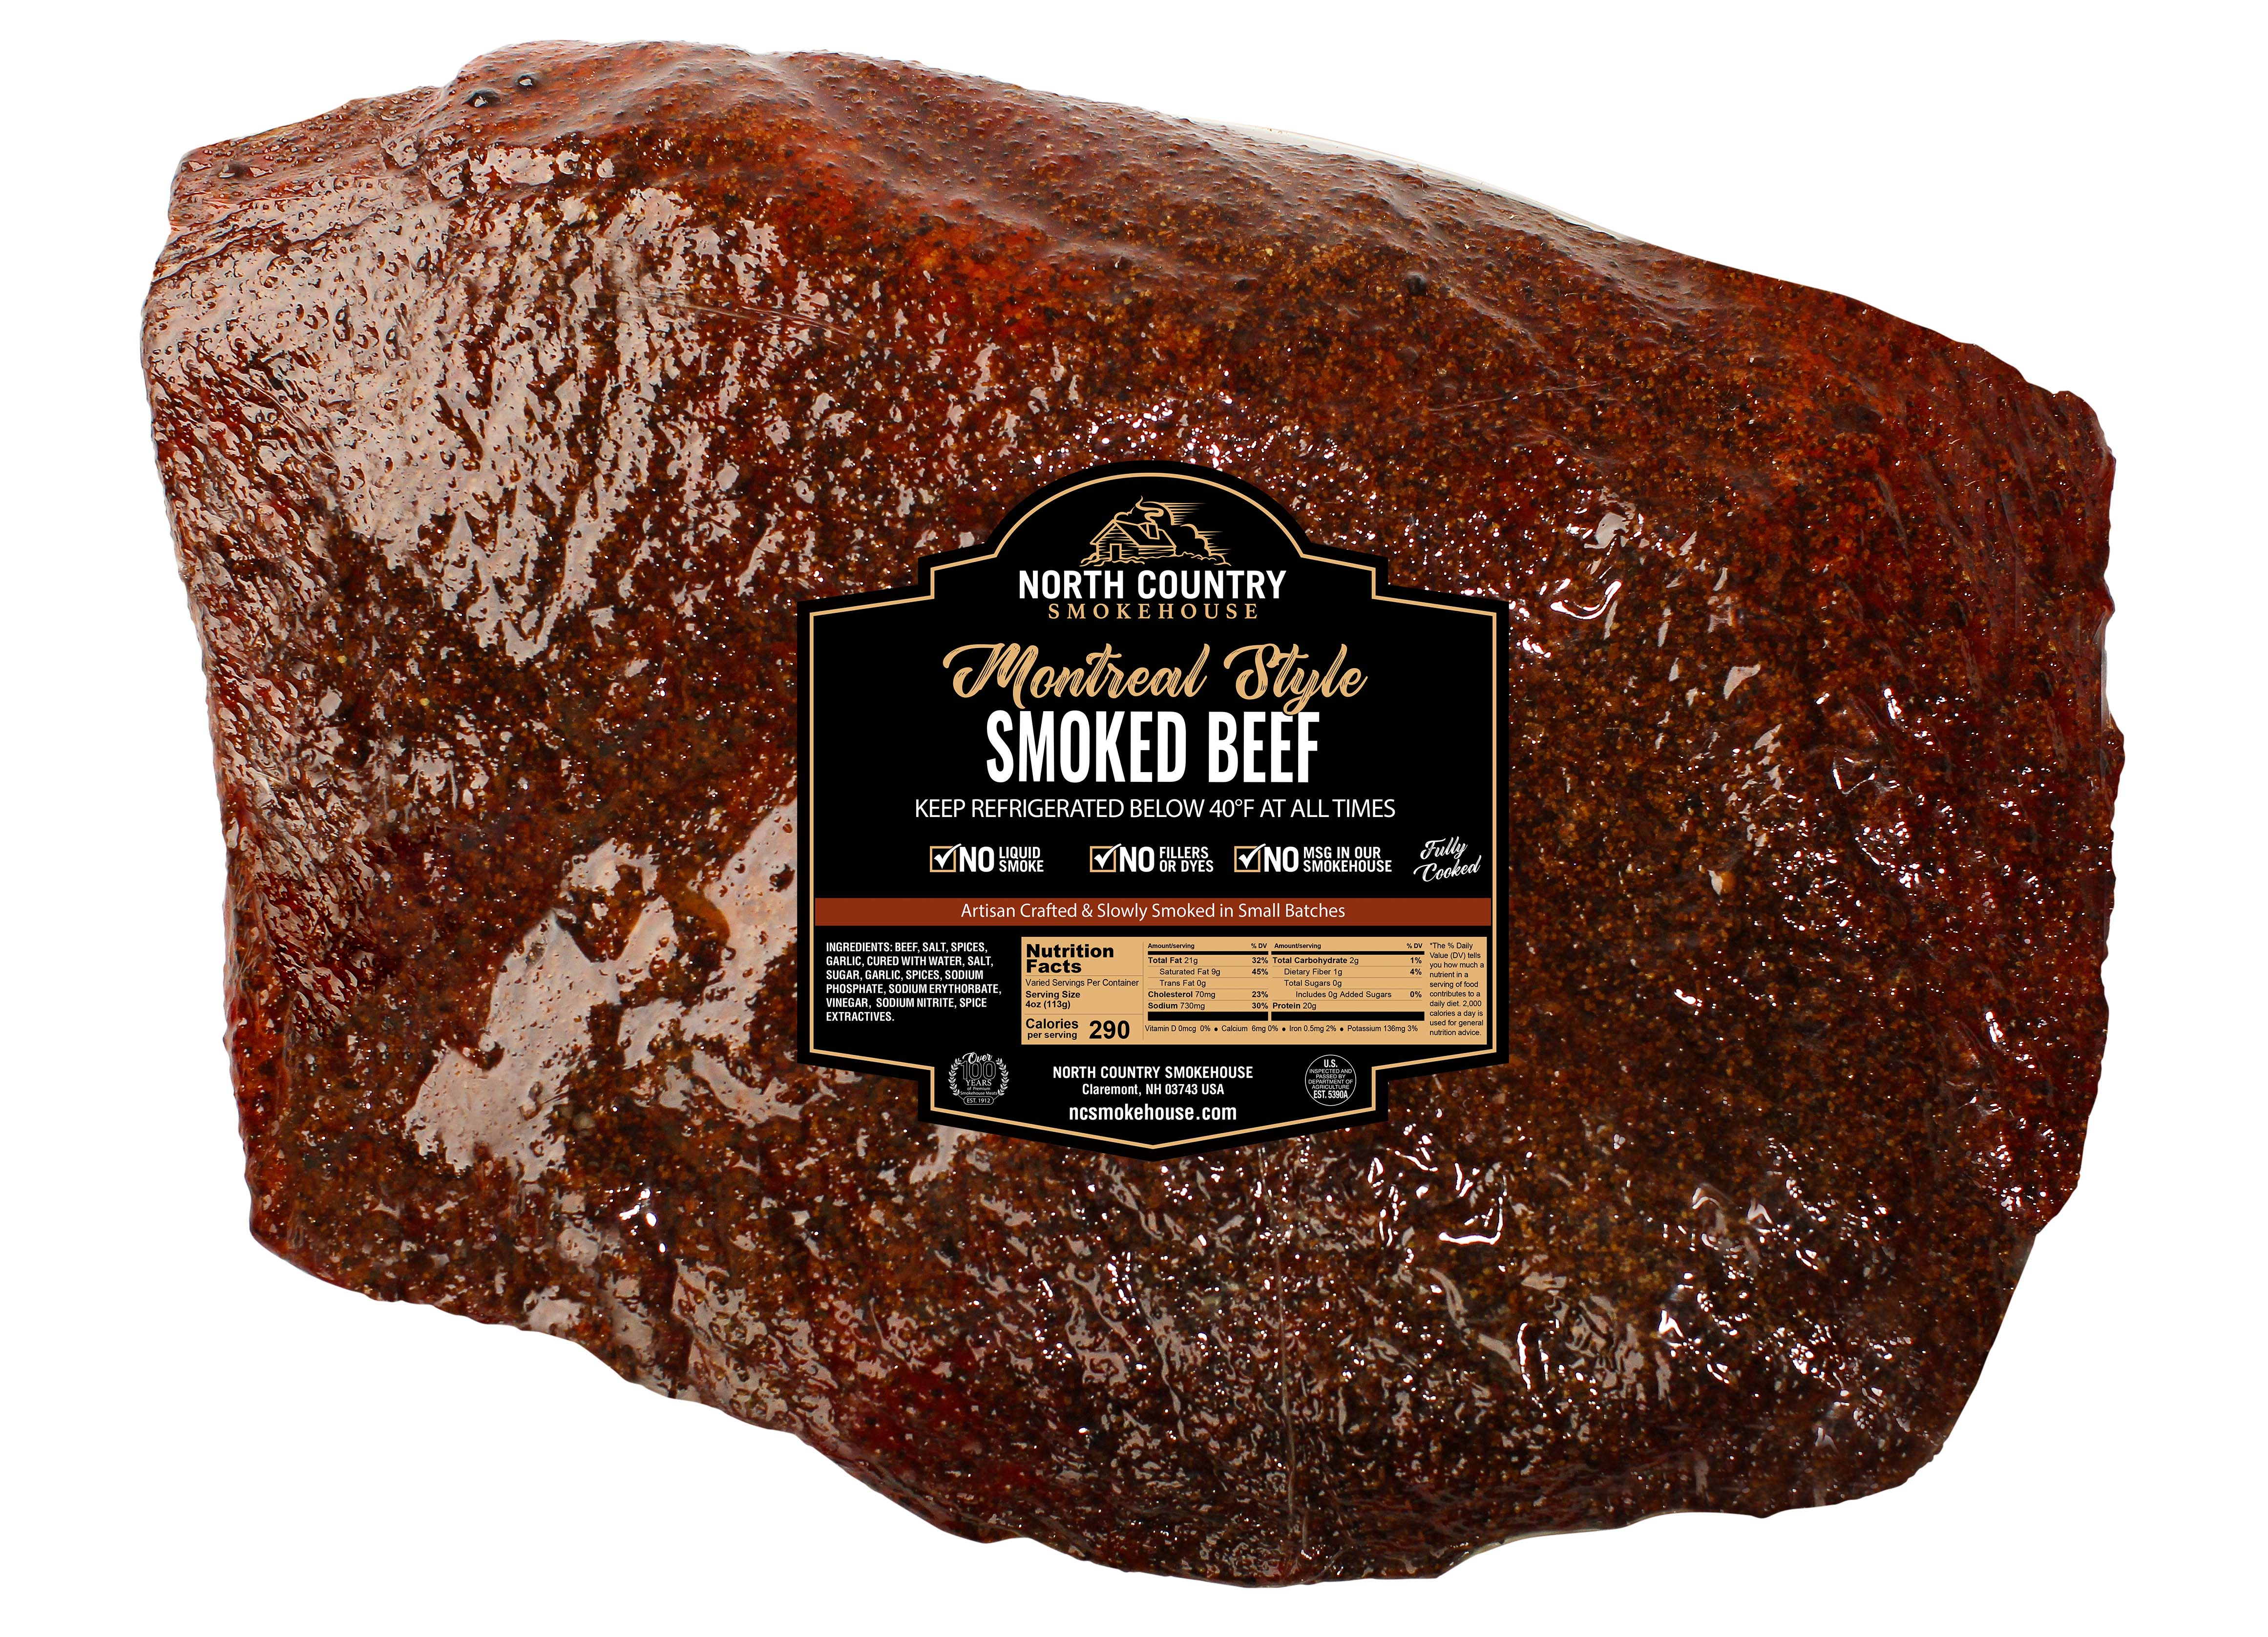 Original Montreal Smoked Beef Brisket - 2, 12 oz. packages